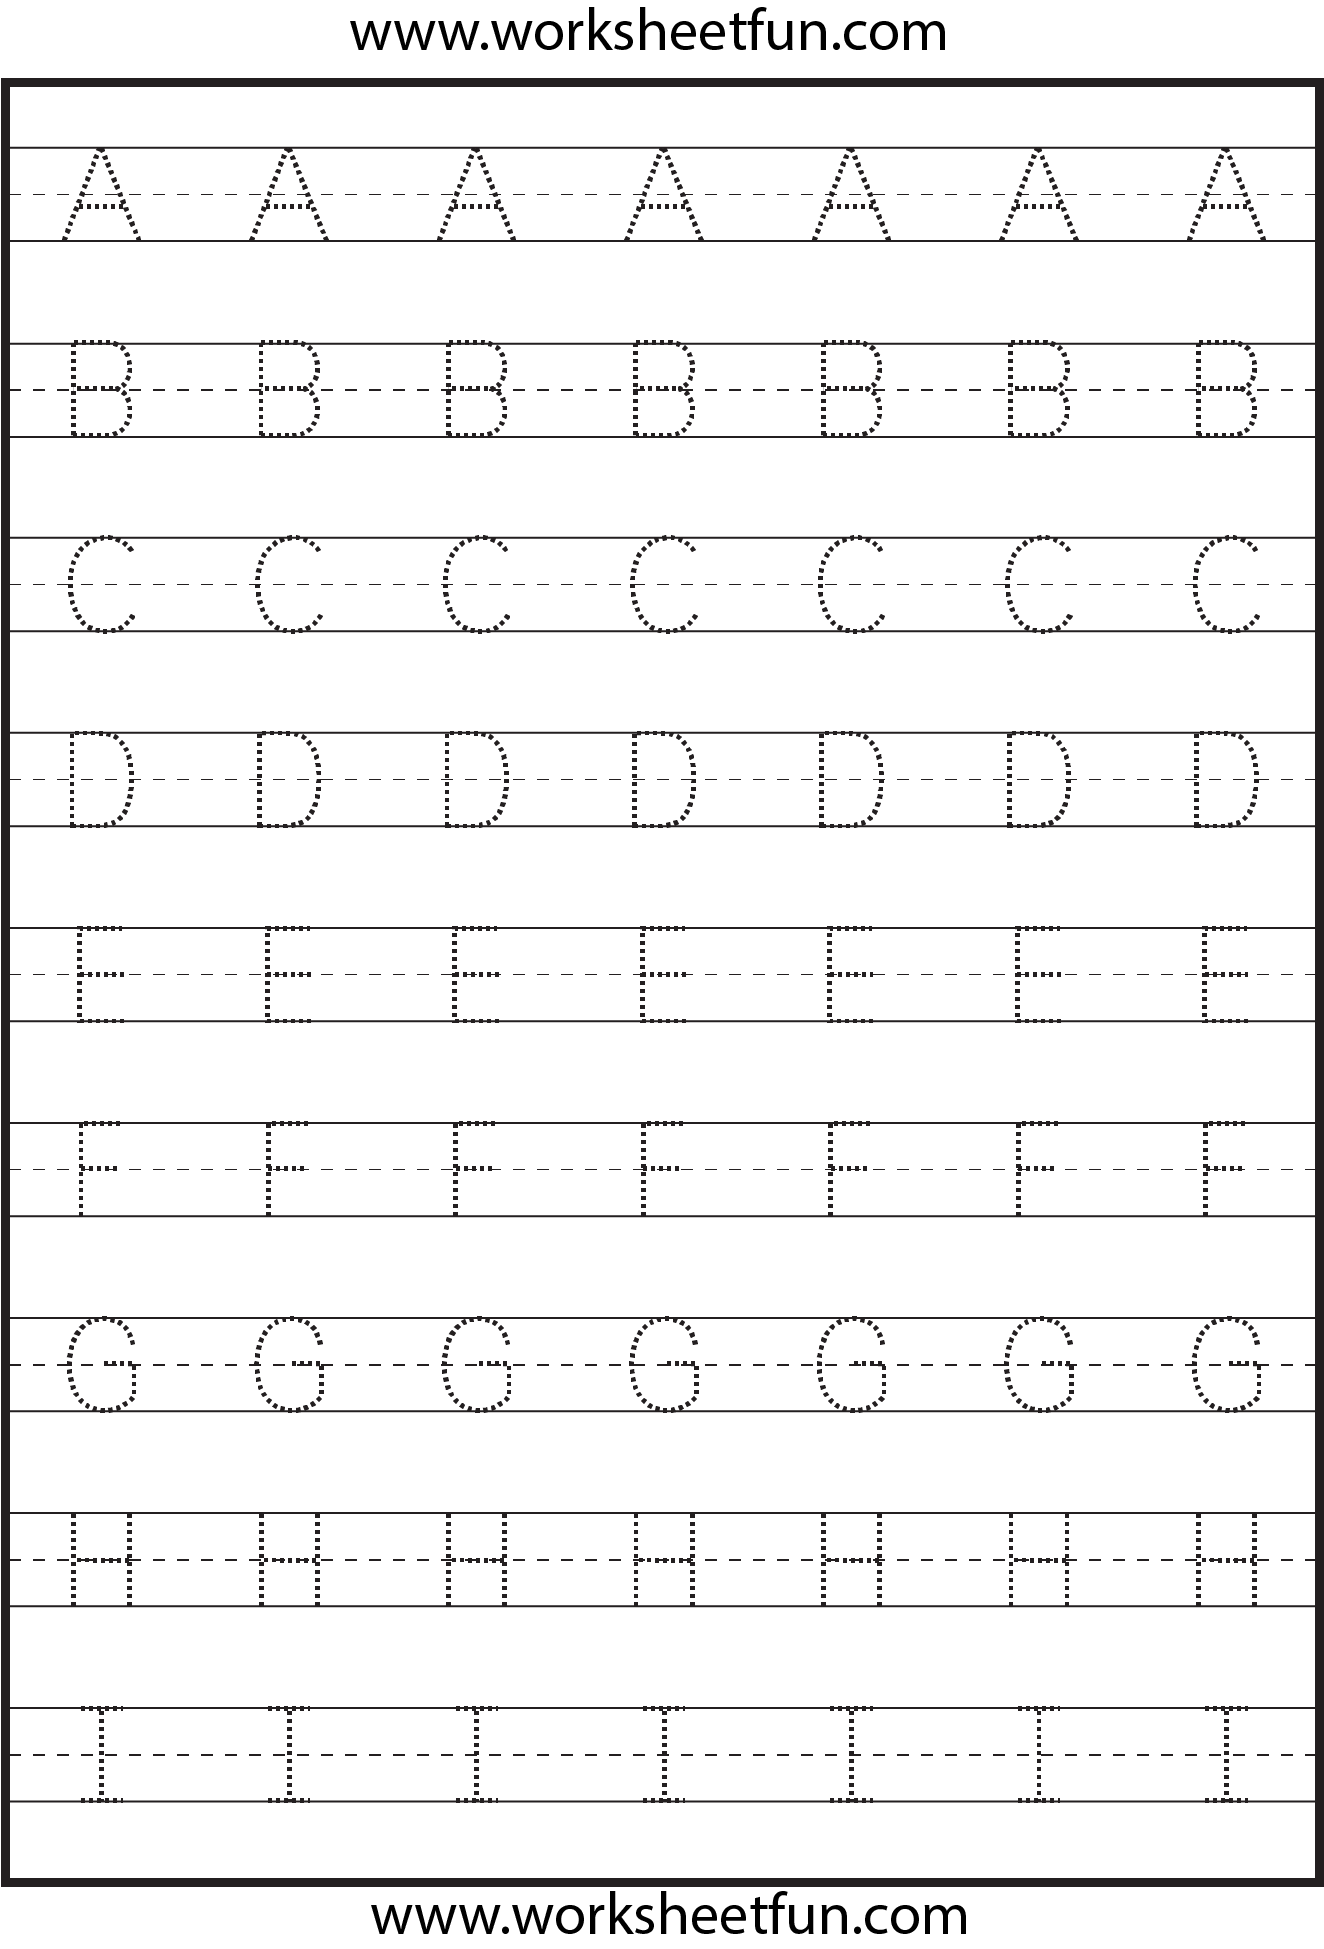 Worksheet Tracing Alphabet Letters tracing uppercase letters capital 3 worksheets letter tracing